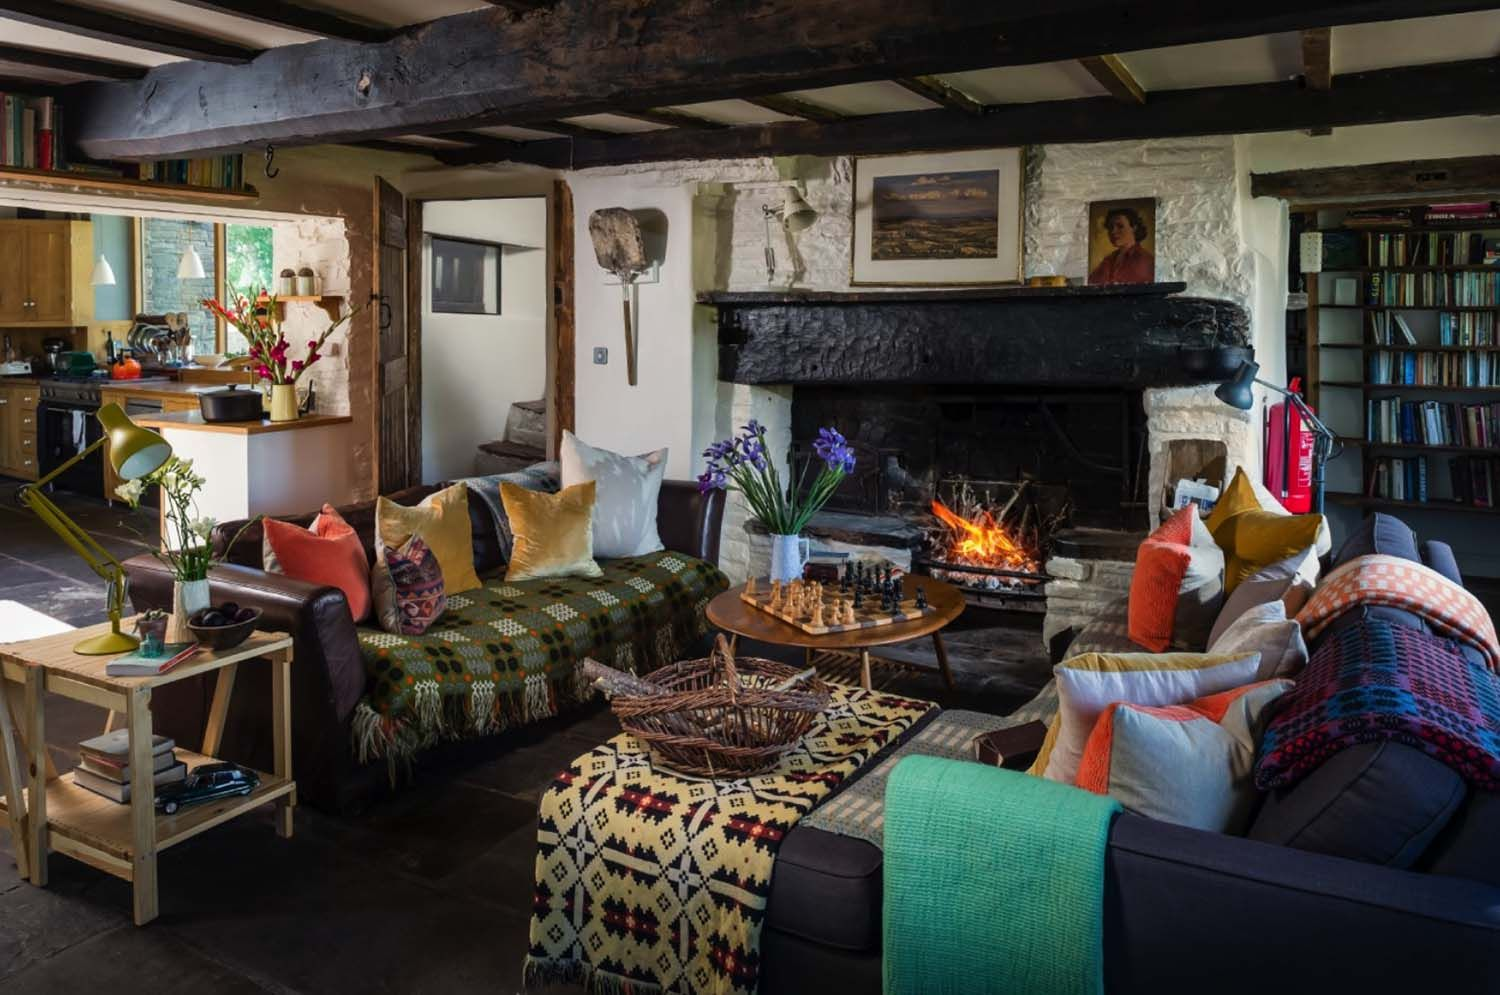 Modern Rustic Cottage In The English Countryside Of Herefordshire Country Cottage Living Country Cottage Living Room Rustic Cottage Decor